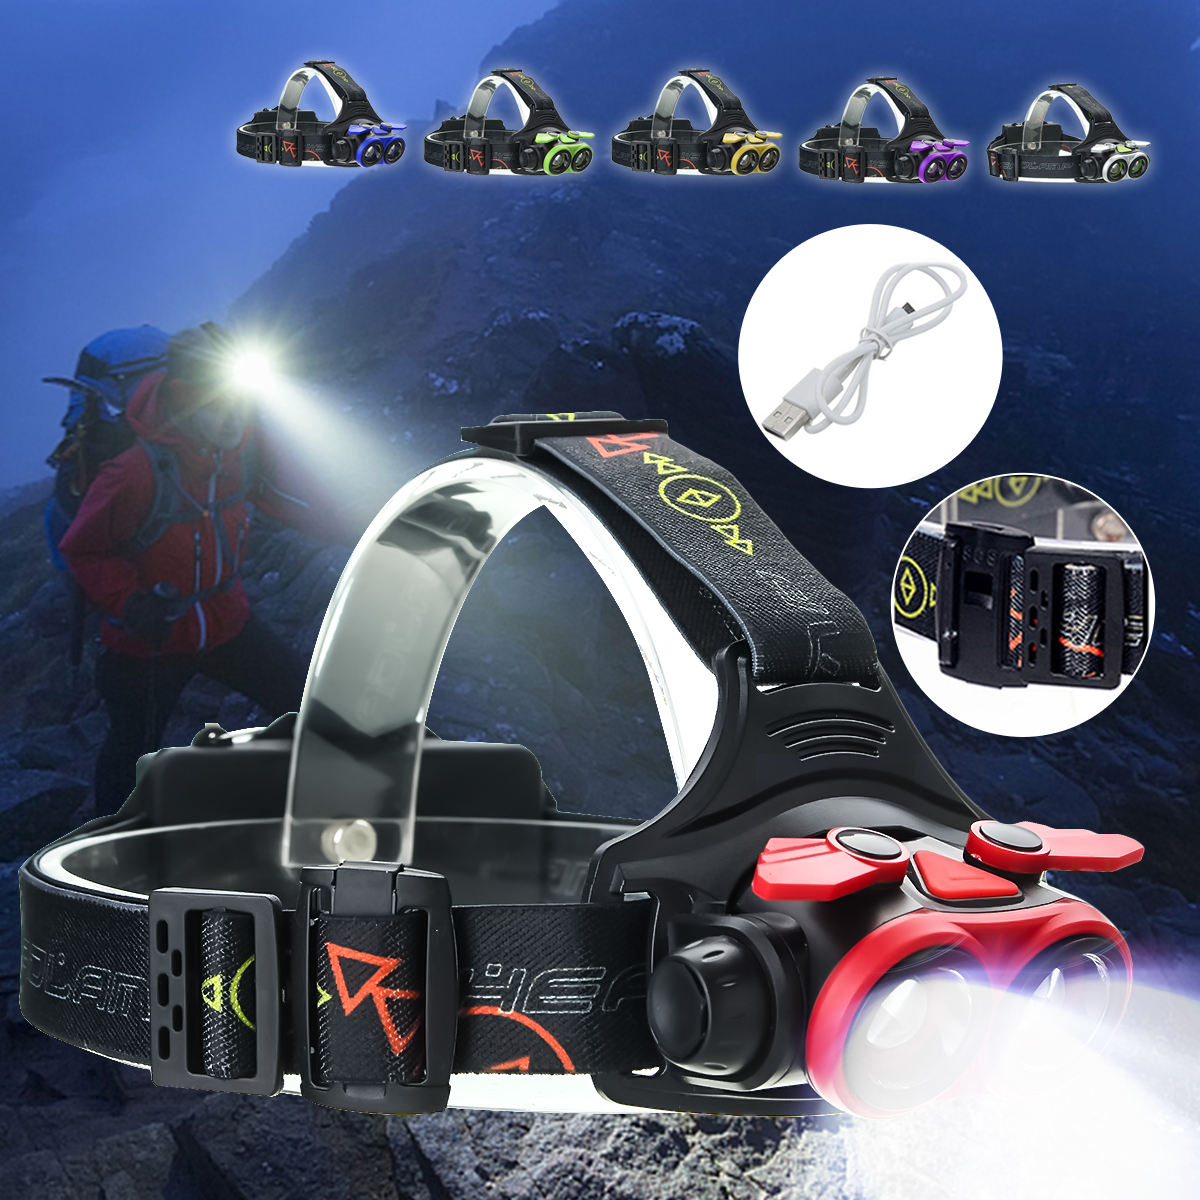 5000 Lumens T6 LED Telescopic Zoom Headlamp Headlight Flashlight Torch Waterproof 4 Modes + USB Cable For Camping Fishing Hiking